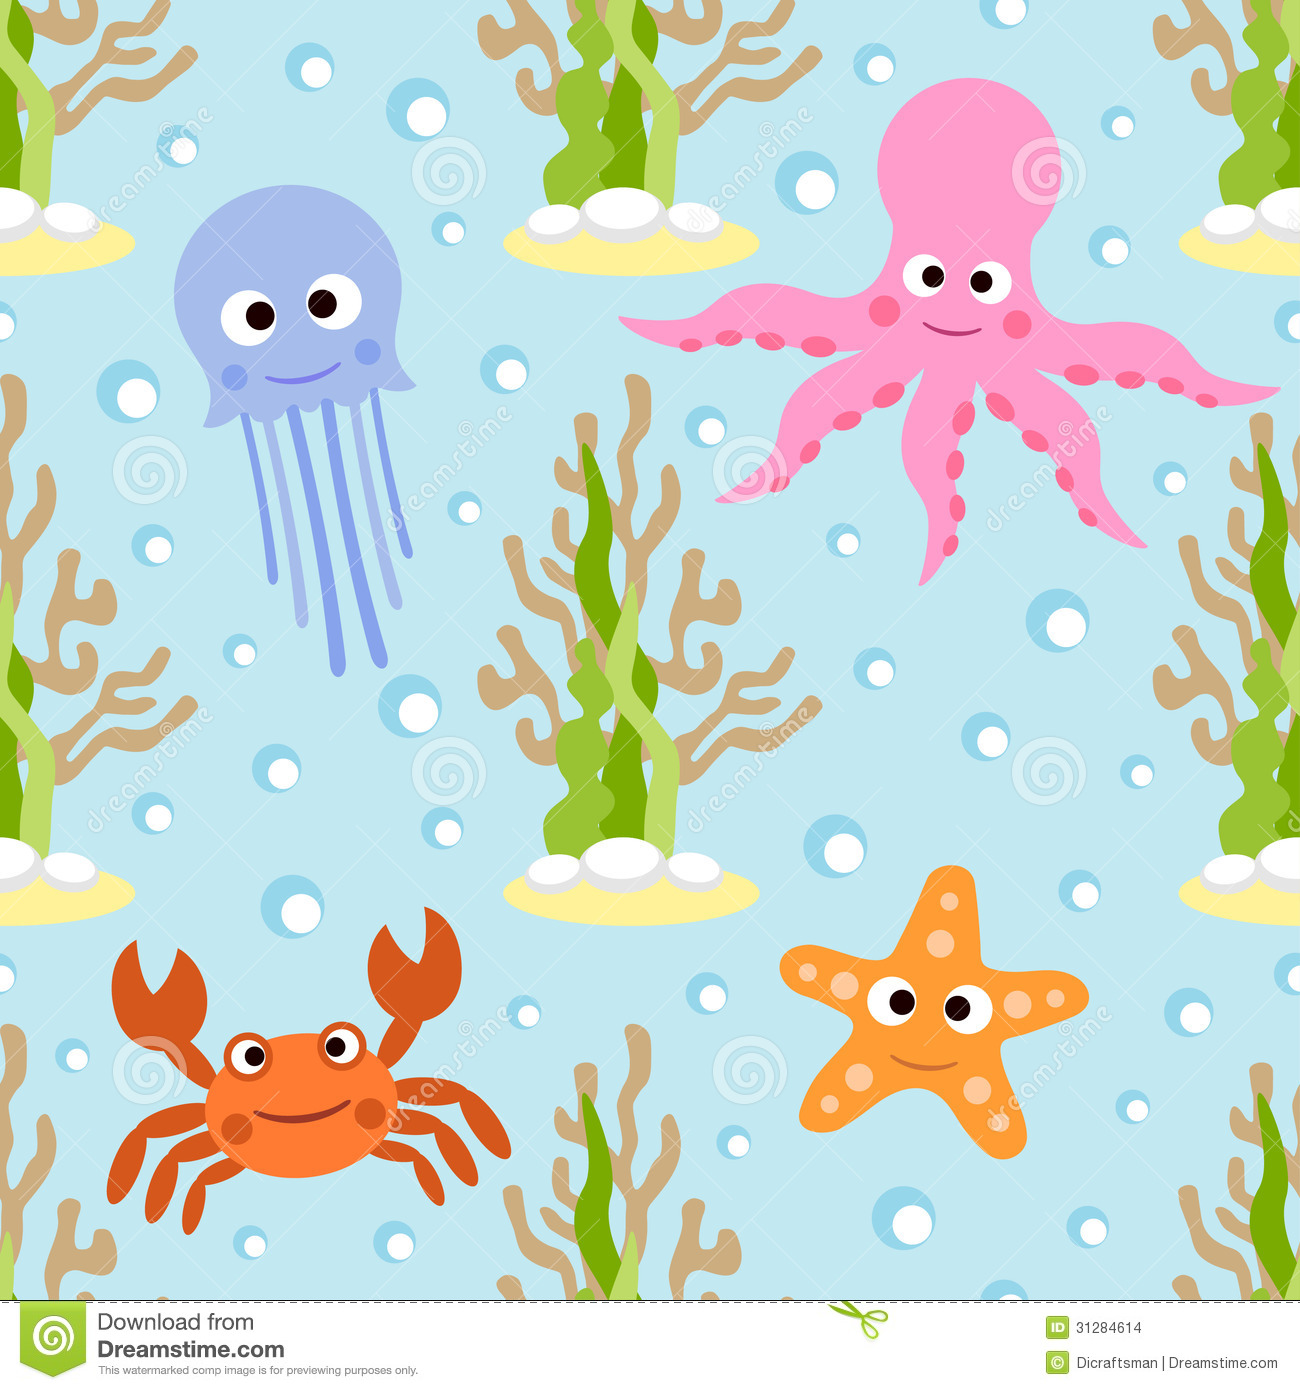 water bubbles background clip art